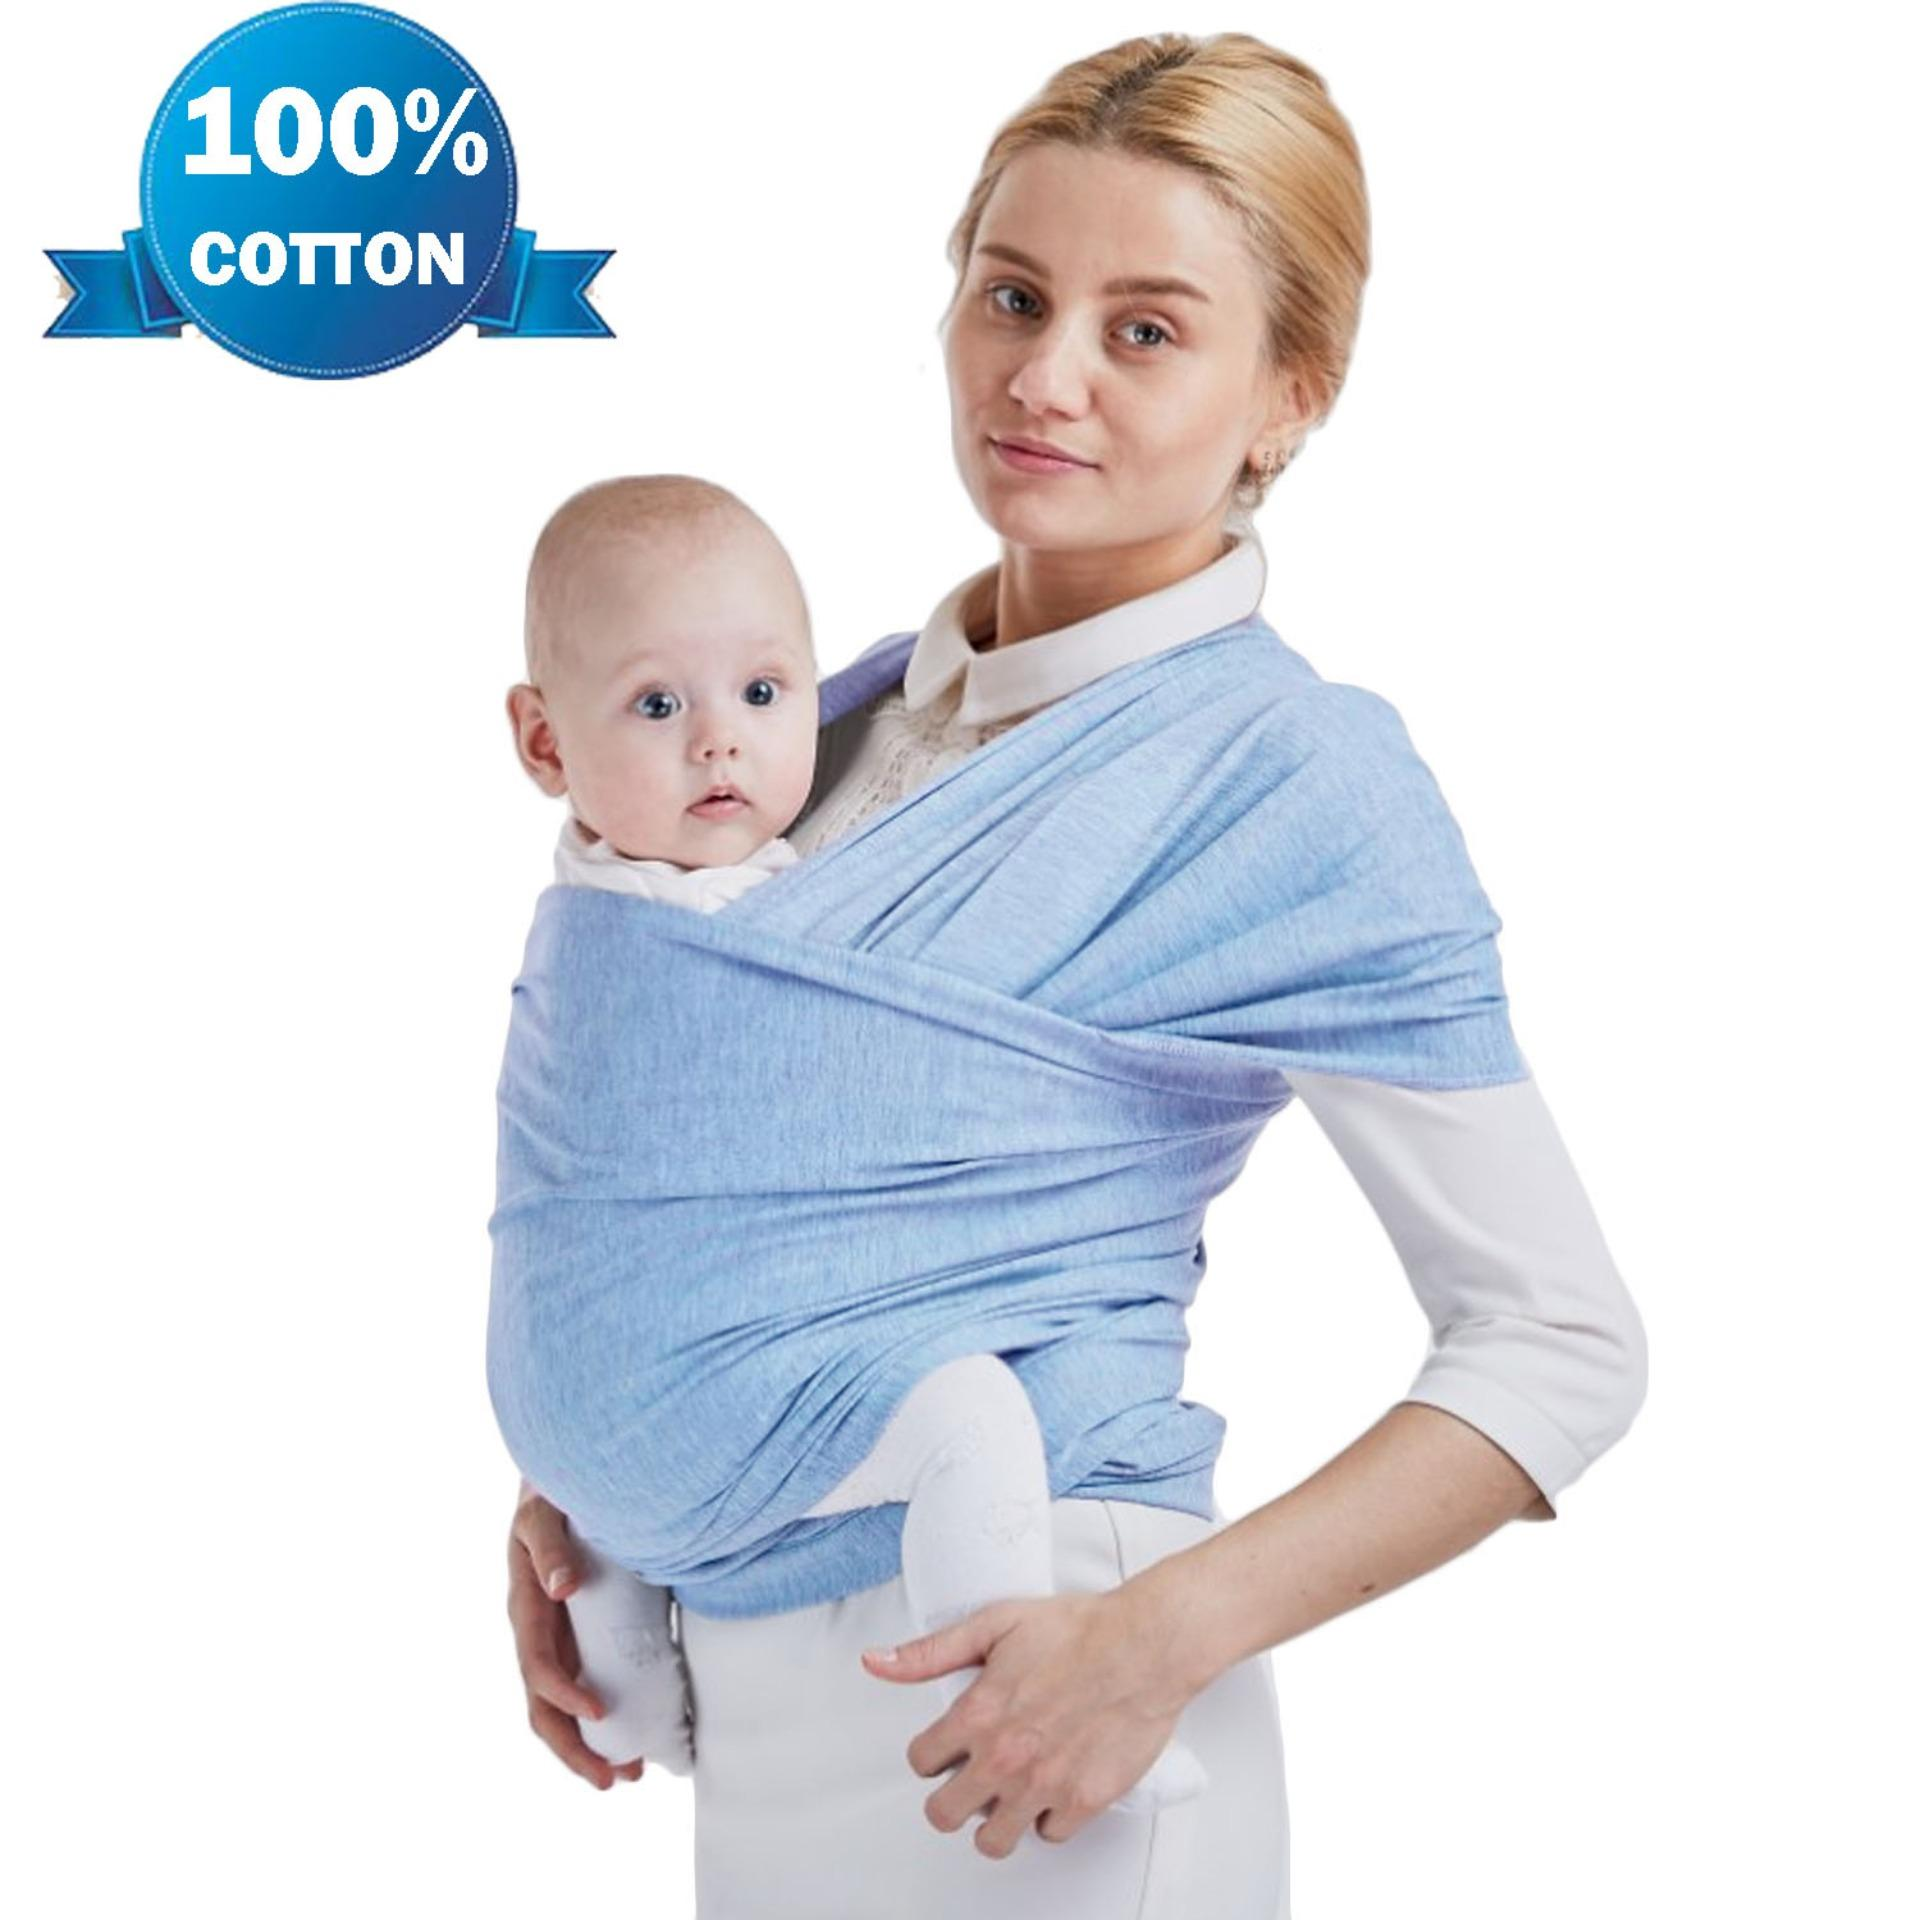 Activity & Gear Reasonable Baby Sling Breathable Comfortable Wrap Infant Carrier Cotton Kid Baby Infant Carrier Soft Ring Swing Slings Baby Sling Product Discounts Sale